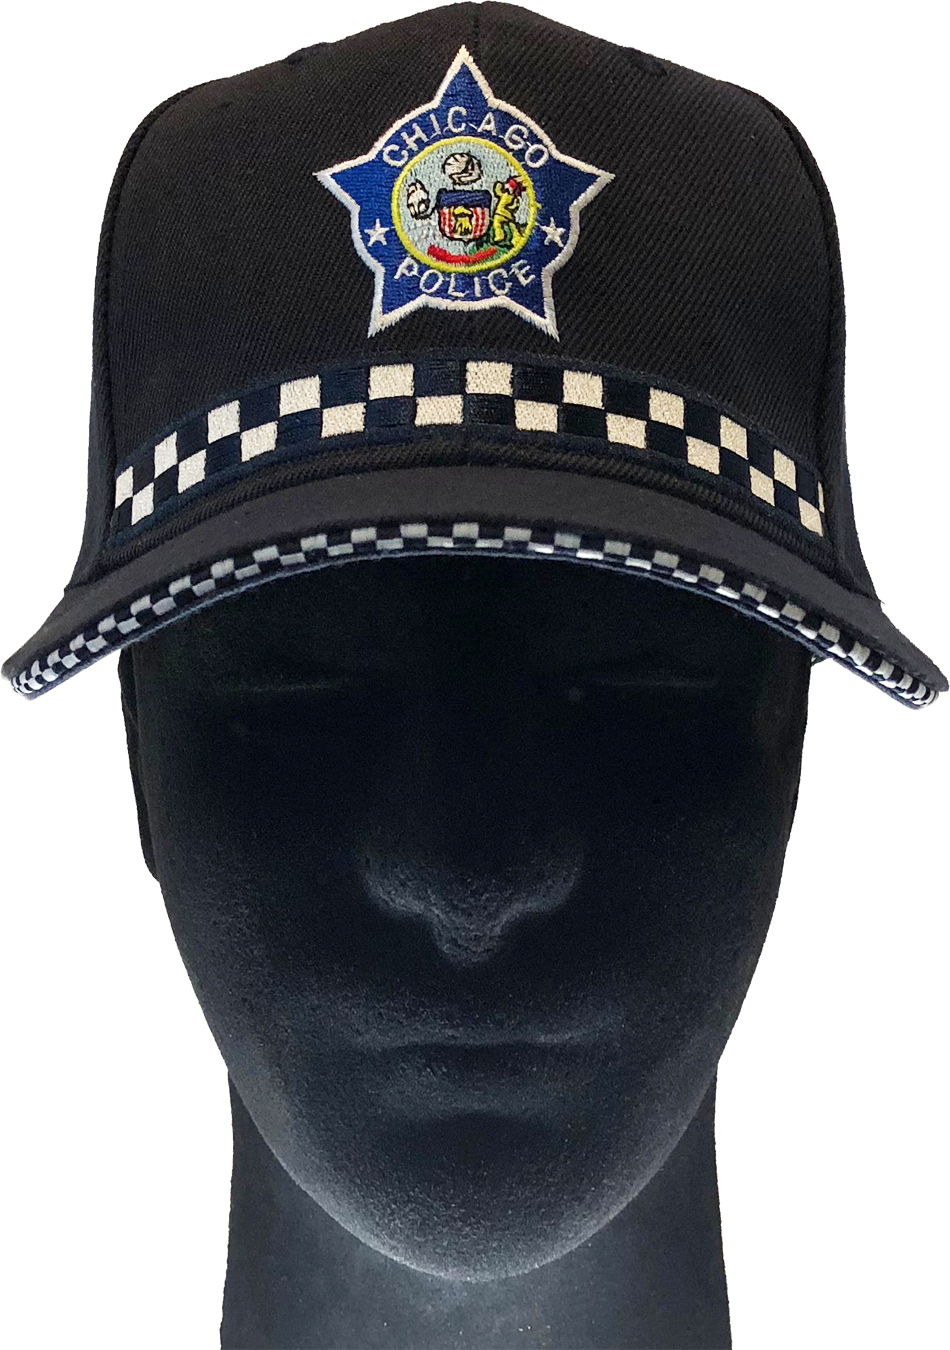 Chicago Police High Crown Uniform Cap Police Officer